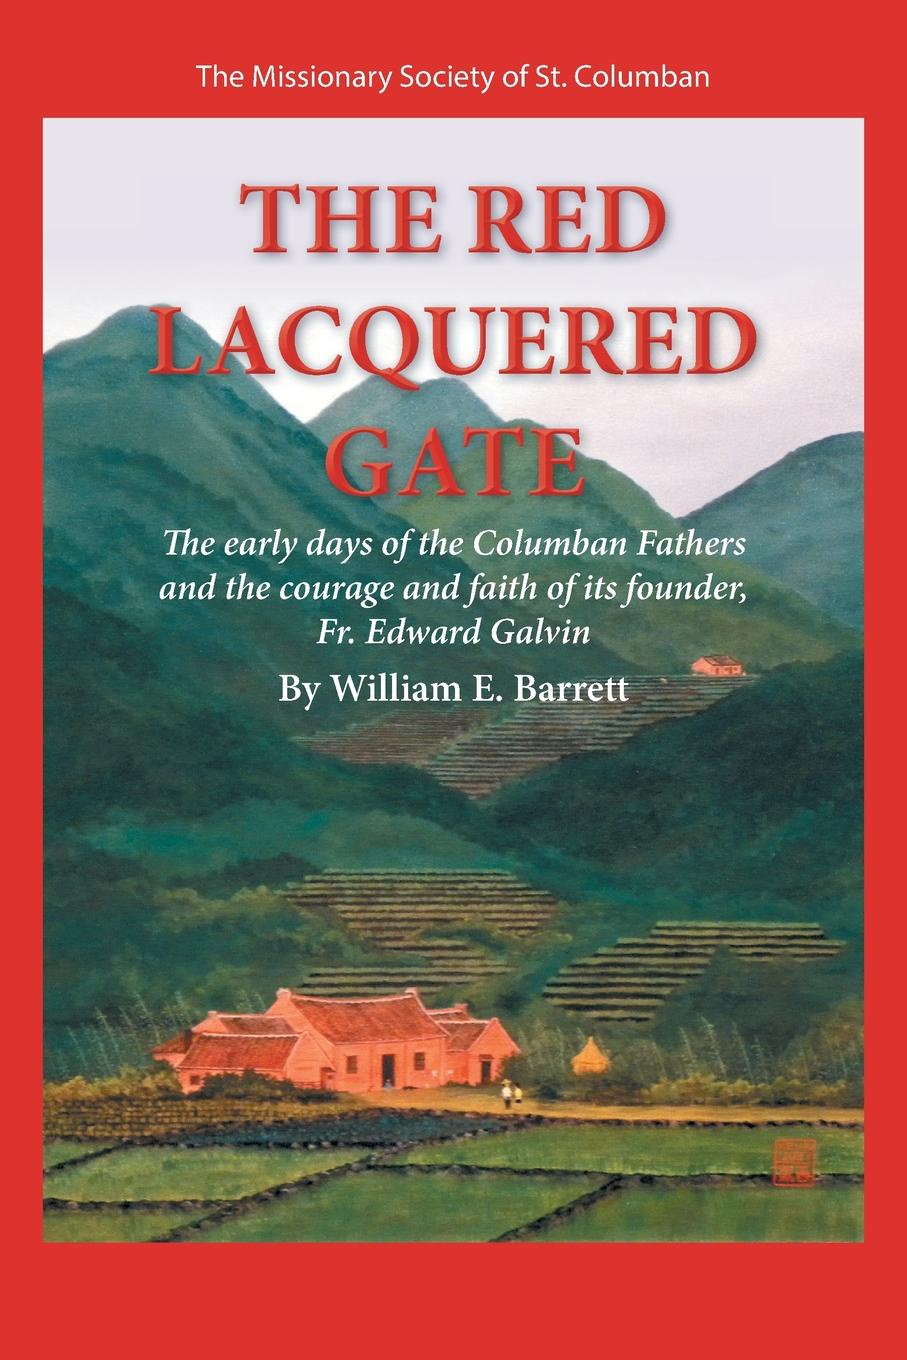 William E Barrett The Red Lacquered Gate The Early Days of the Columban Fathers and the Courage and Faith of Its Founder Fr Edward Galvin